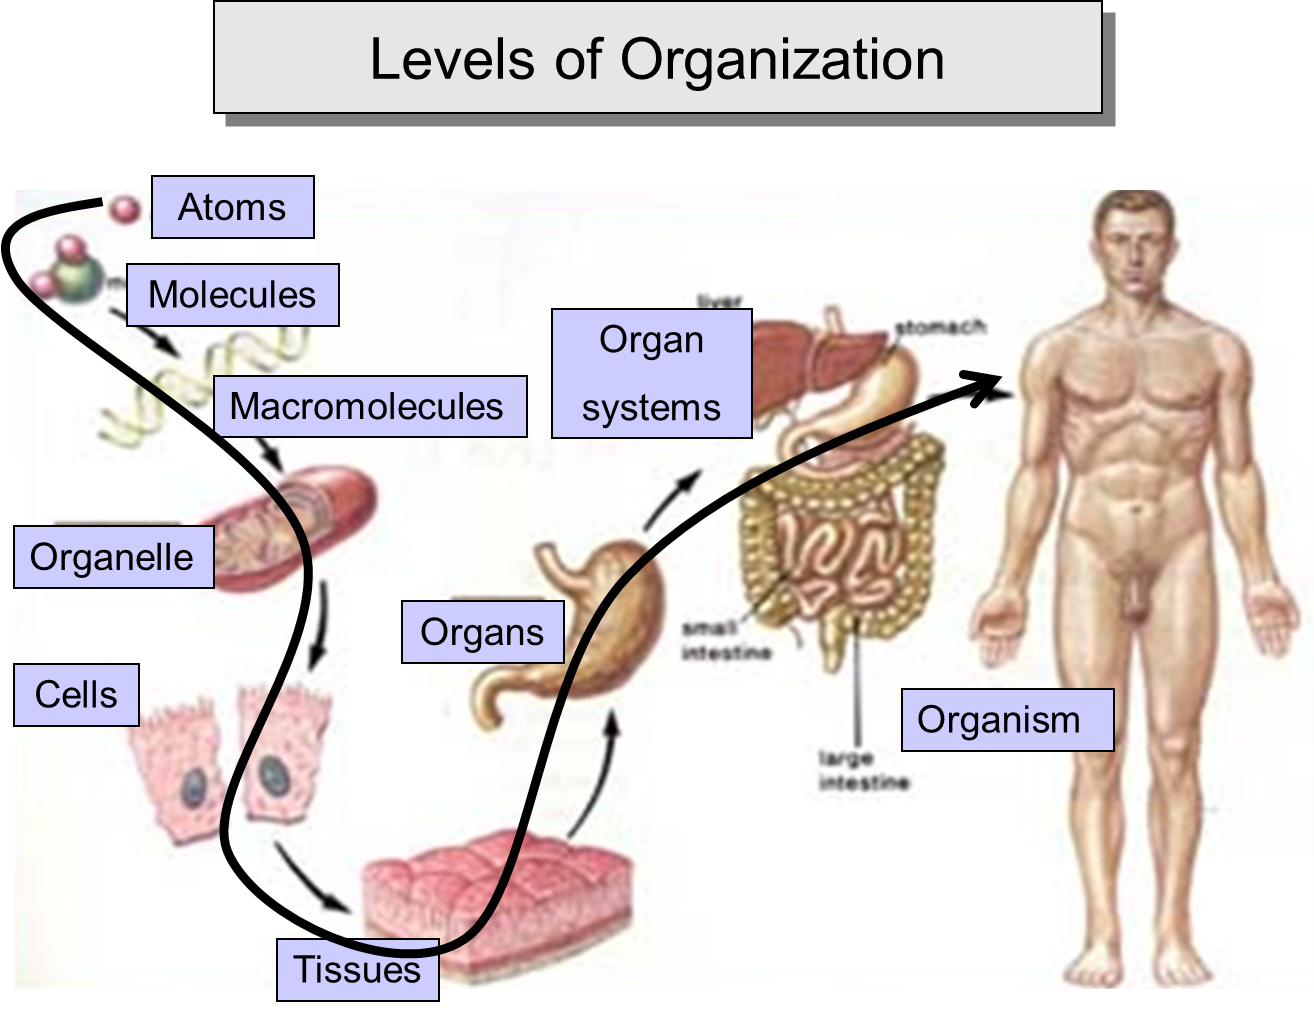 Lab presentation week 2 2 organization of cells general biology lab presentation week 2 2 organization of cells general biology laboratory outline 1 unicellular organisms 2 aggregatecolonial 3 biofilm 4 ccuart Images